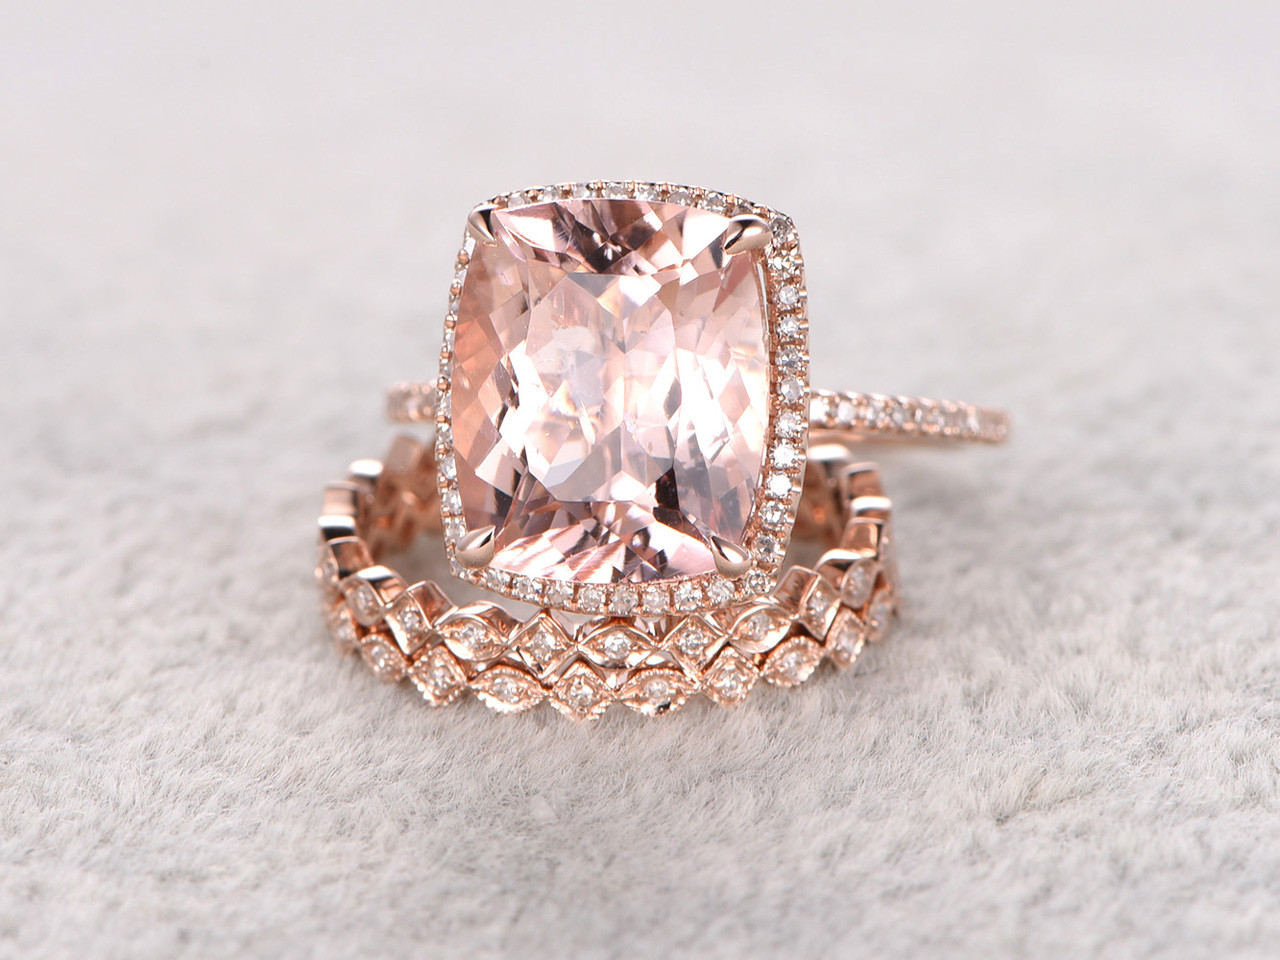 5 Carat Cushion Cut Morganite Wedding Set Diamond Bridal Ring 14k